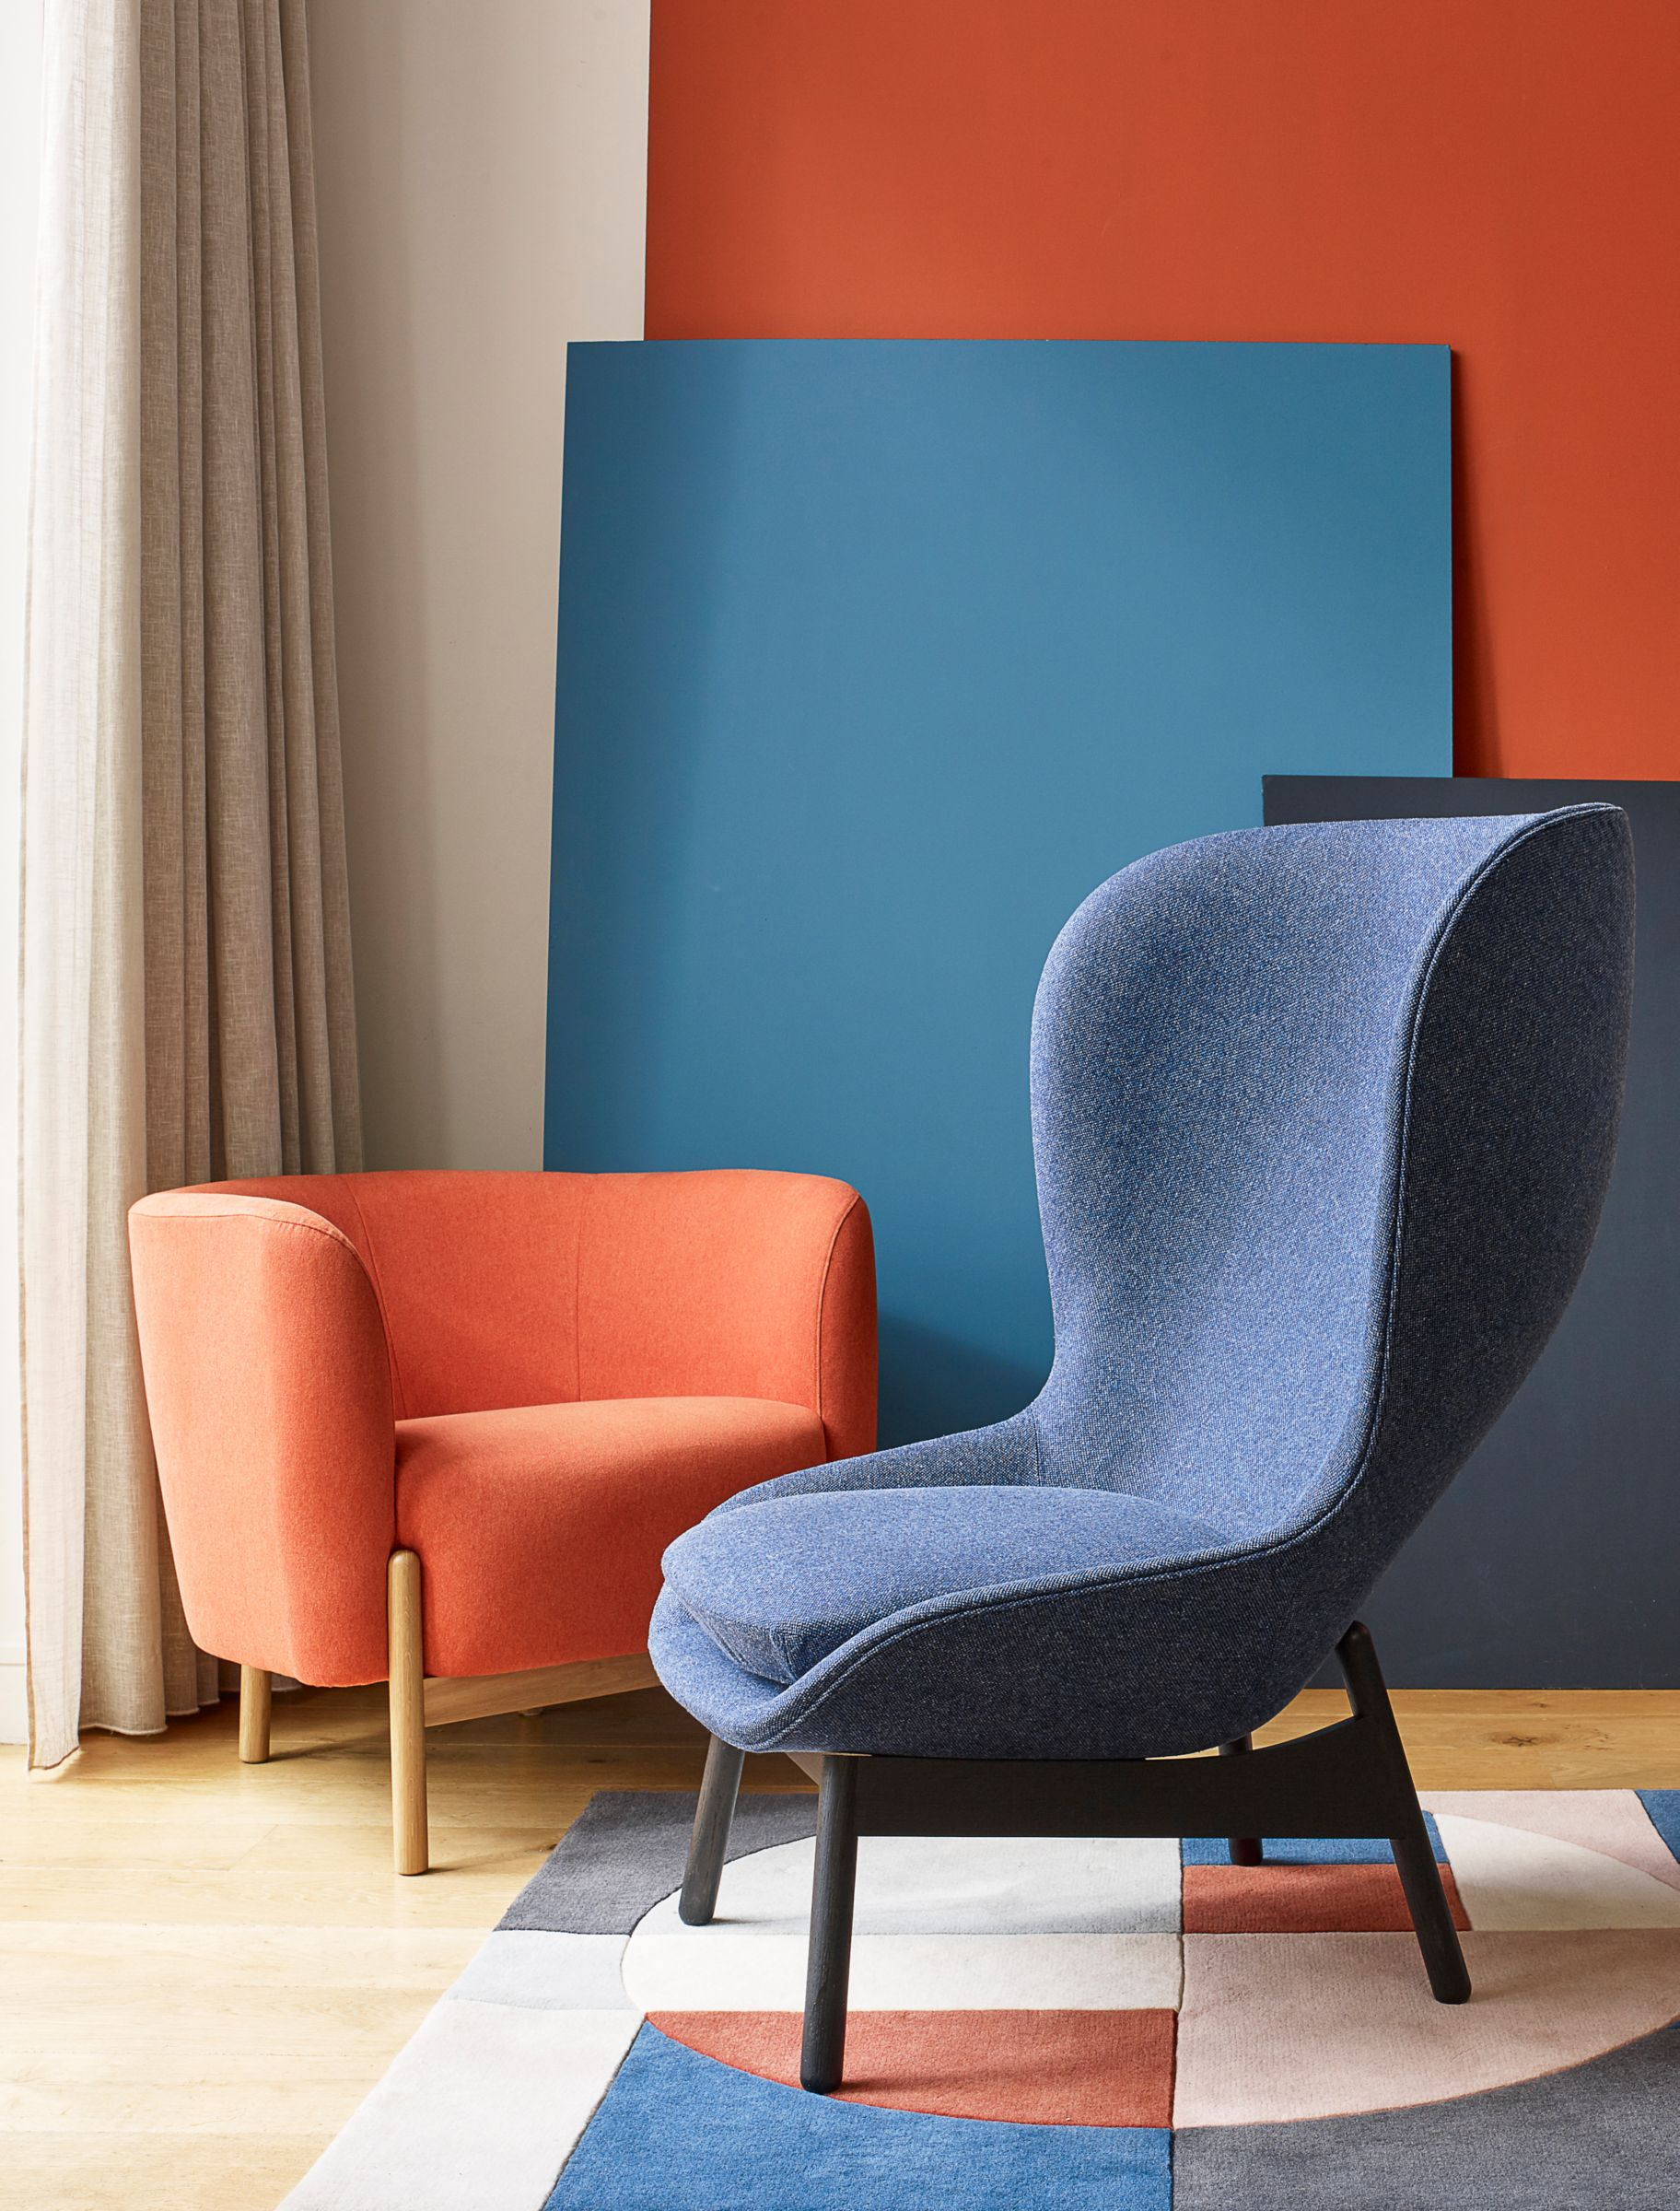 How To Choose An Accent Chair To Transform Your Room